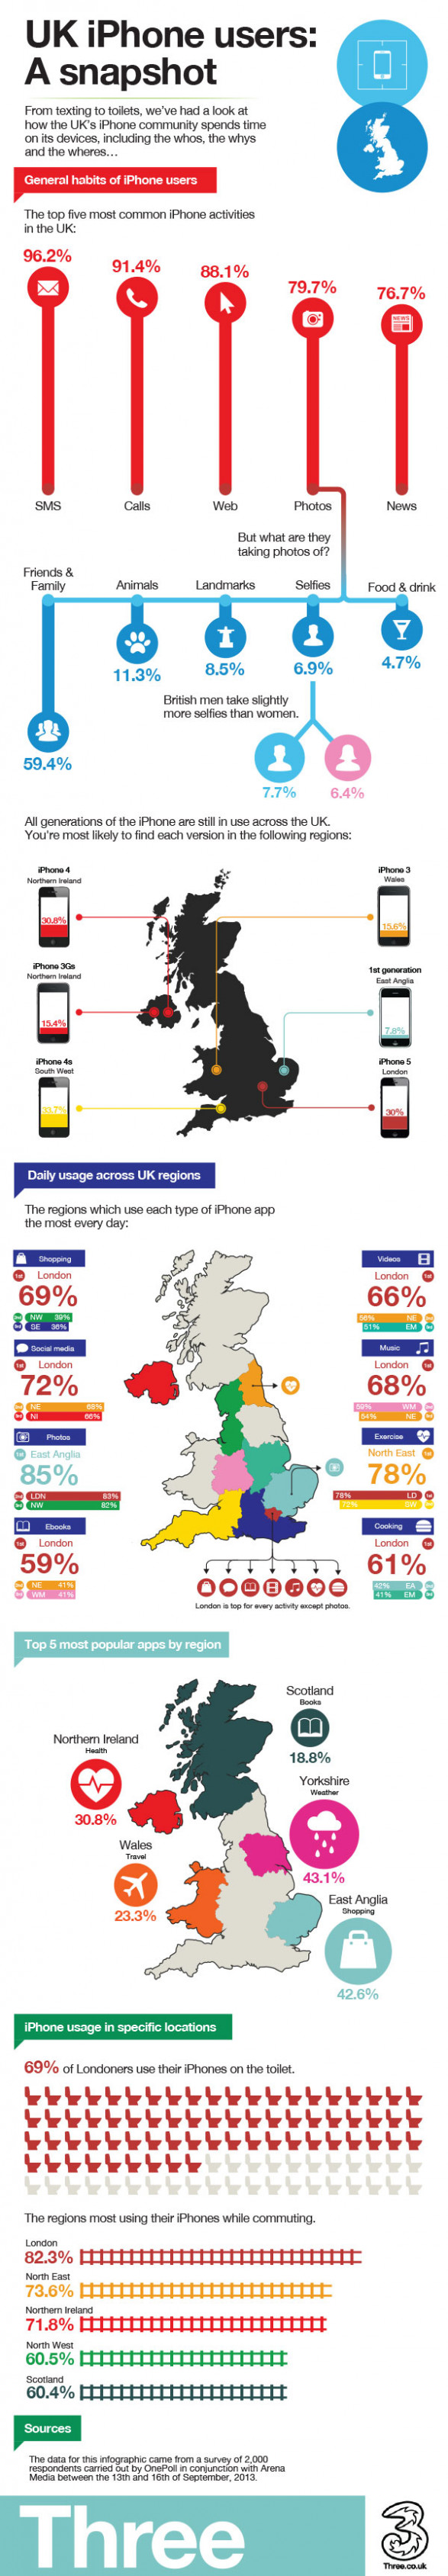 An interesting snapshot of iPhone usage in the UK